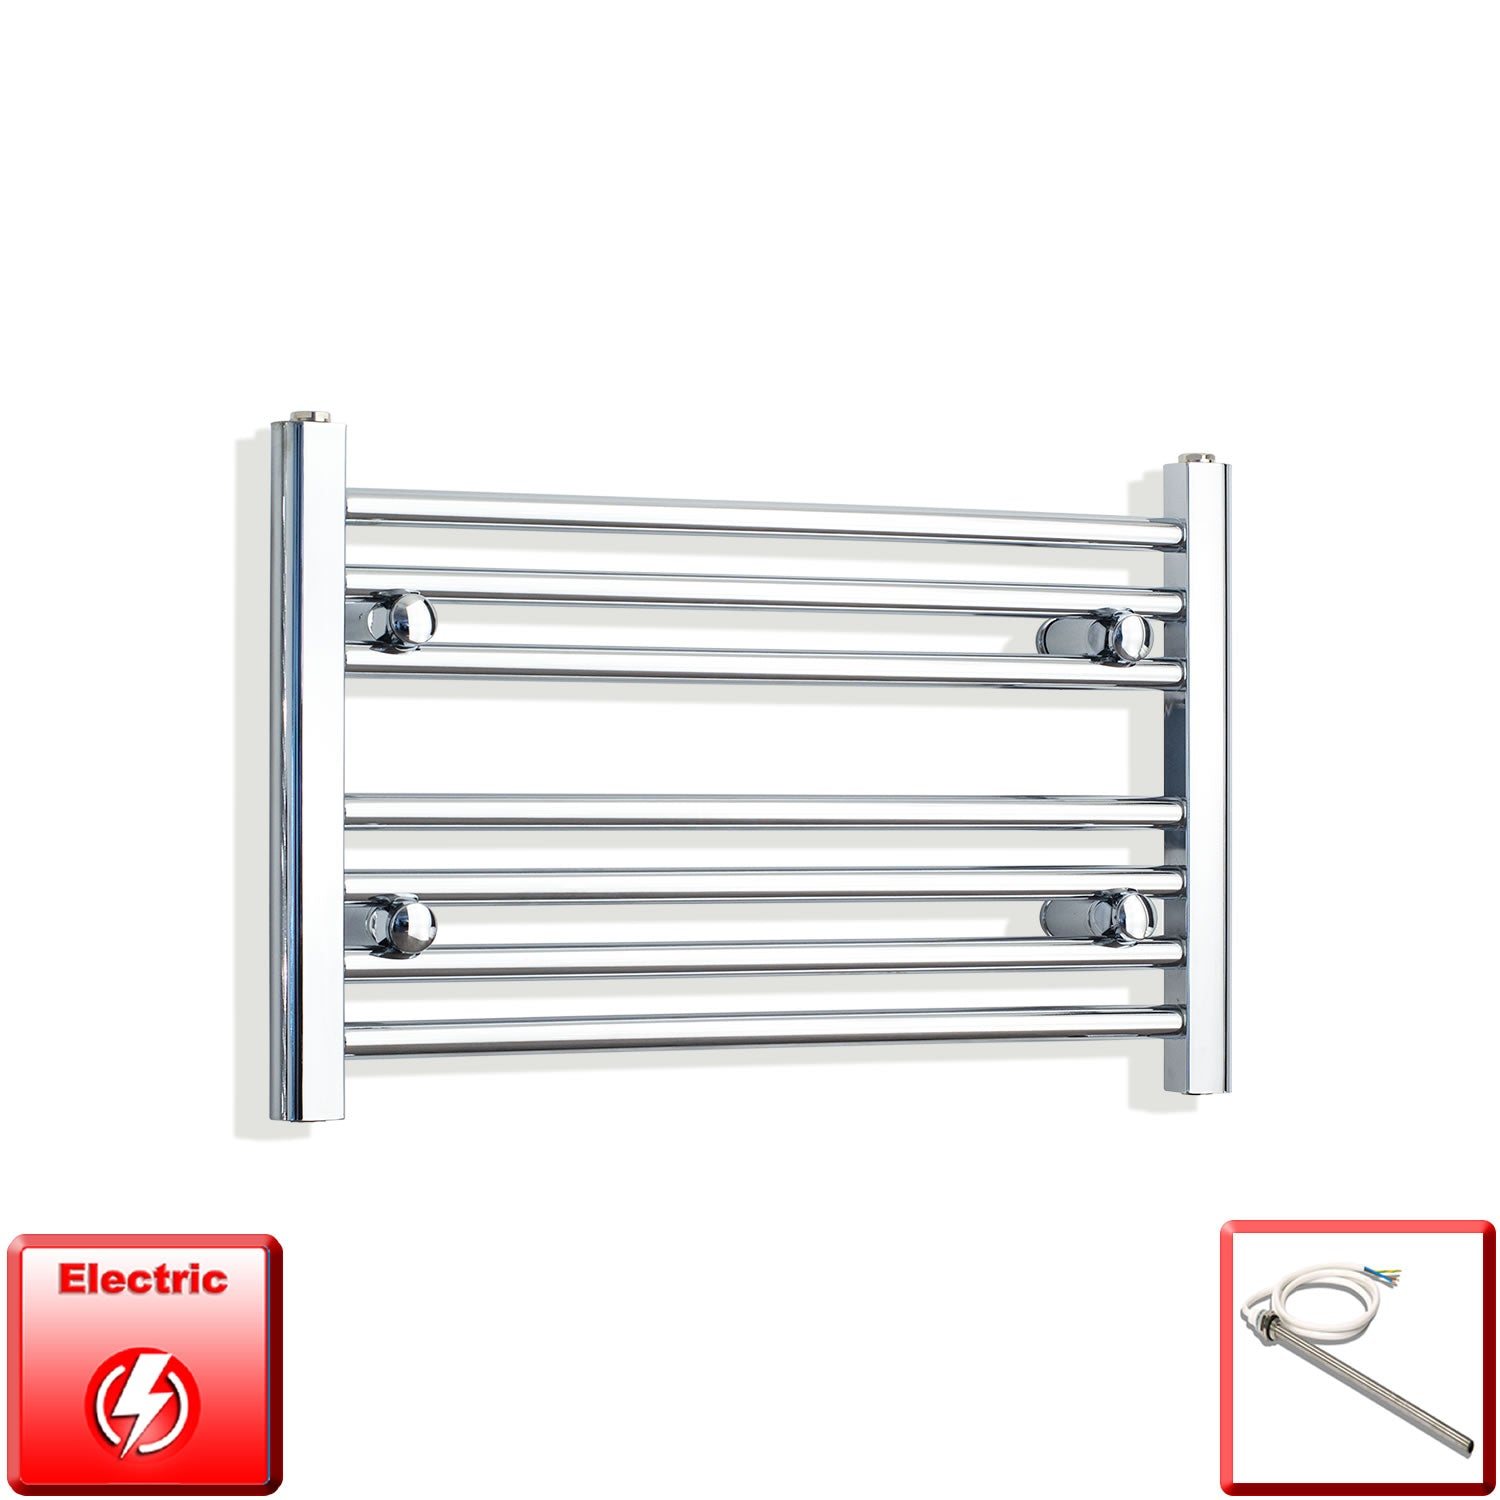 650mm Wide 400mm High Pre-Filled Chrome Electric Towel Rail Radiator With Single Heat Element